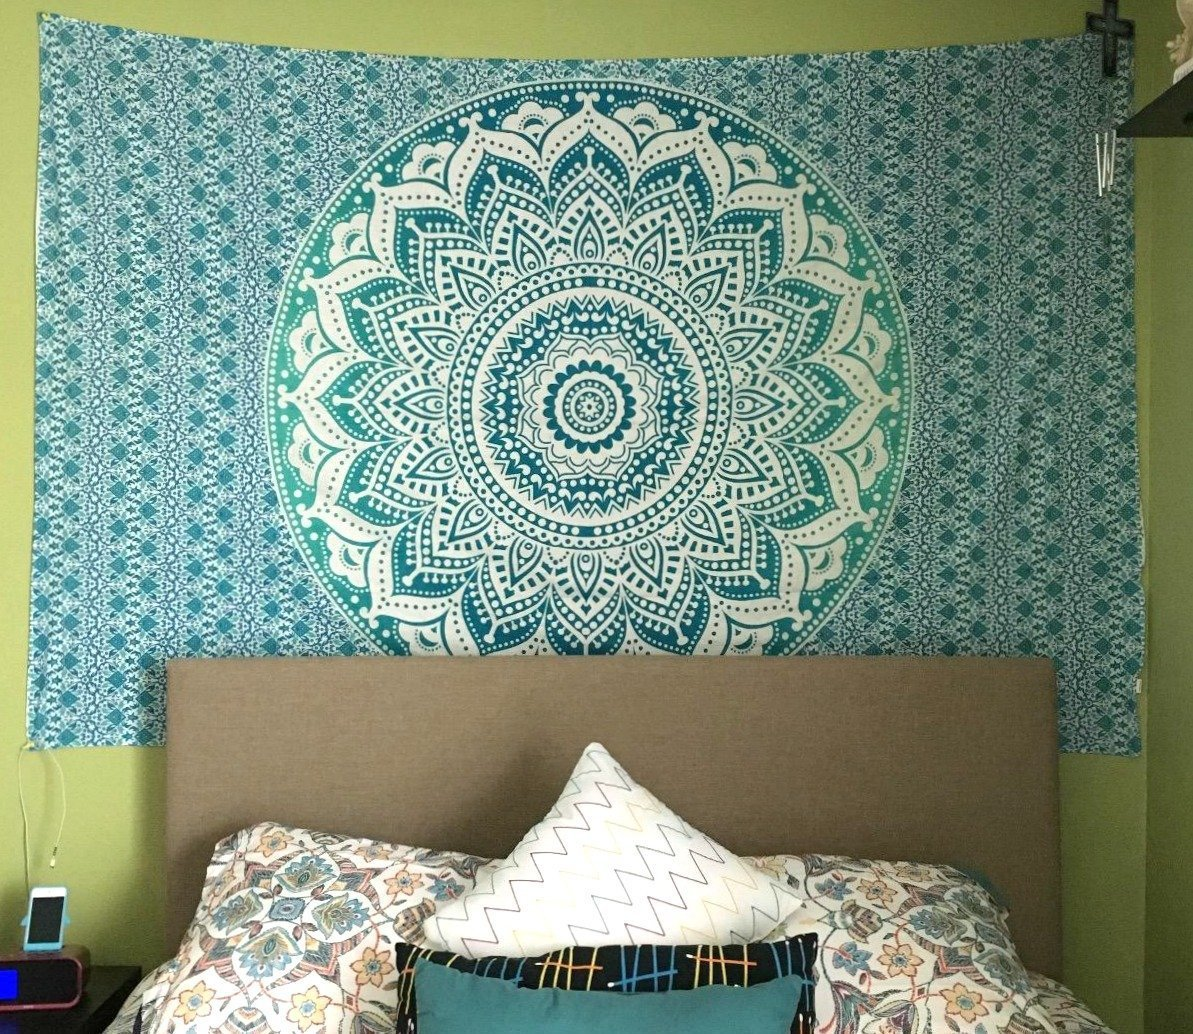 Exclusive Twin Green Ombre Tapestry by JaipurHandloom Ombre Bedding, Mandala Tapestry, Multi Color Indian Mandala Wall Art Hippie Wall Hanging Bohemian Bedspread by Jaipur Handloom